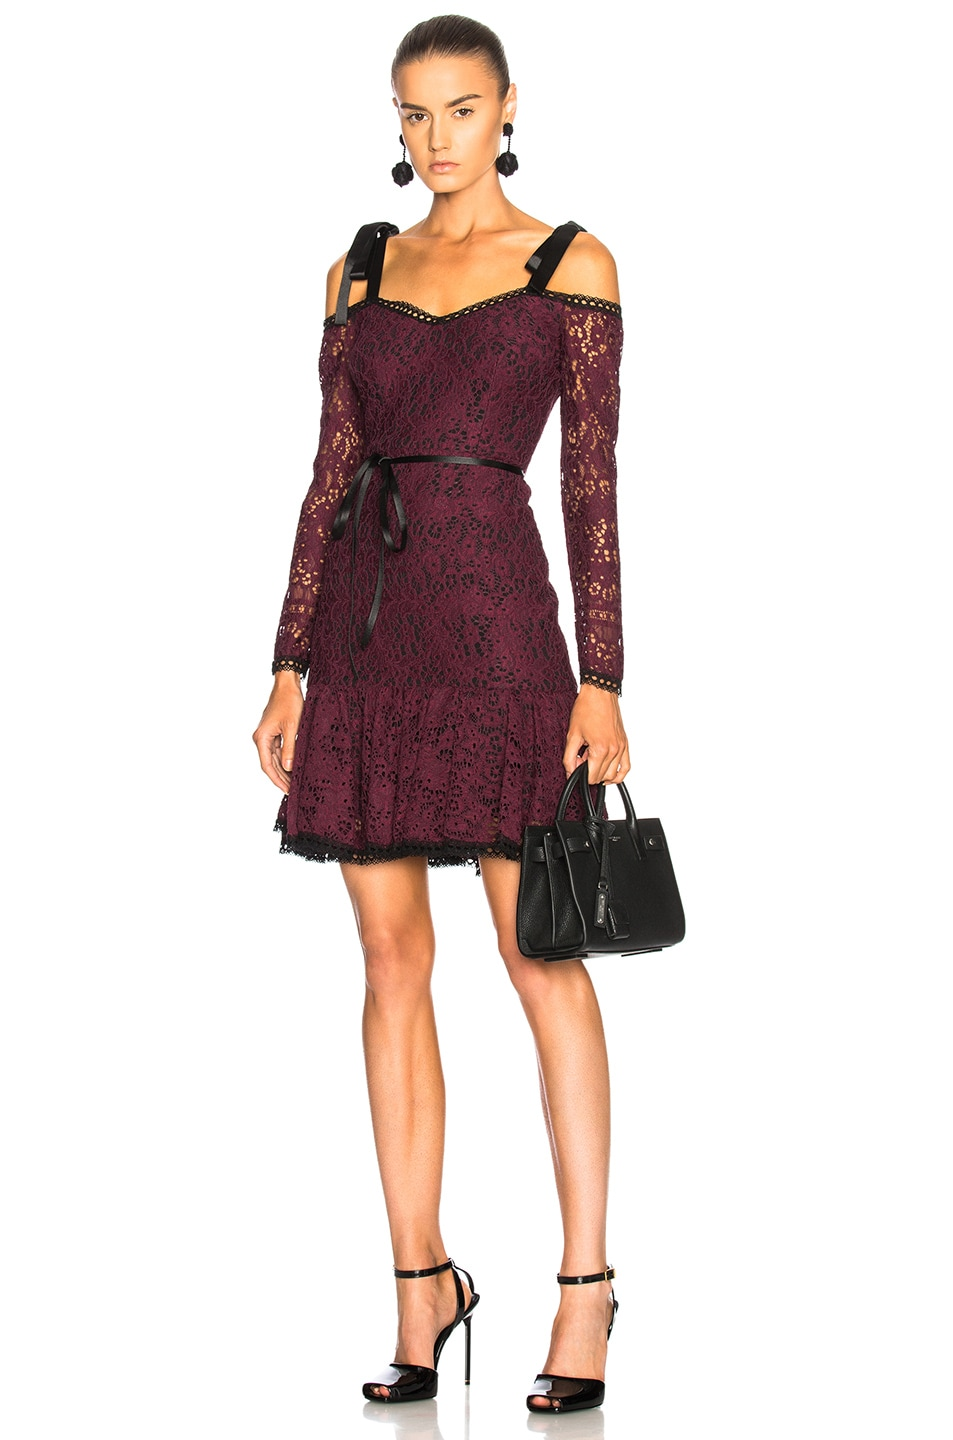 ALEXIS SOPHIA DRESS IN PURPLE